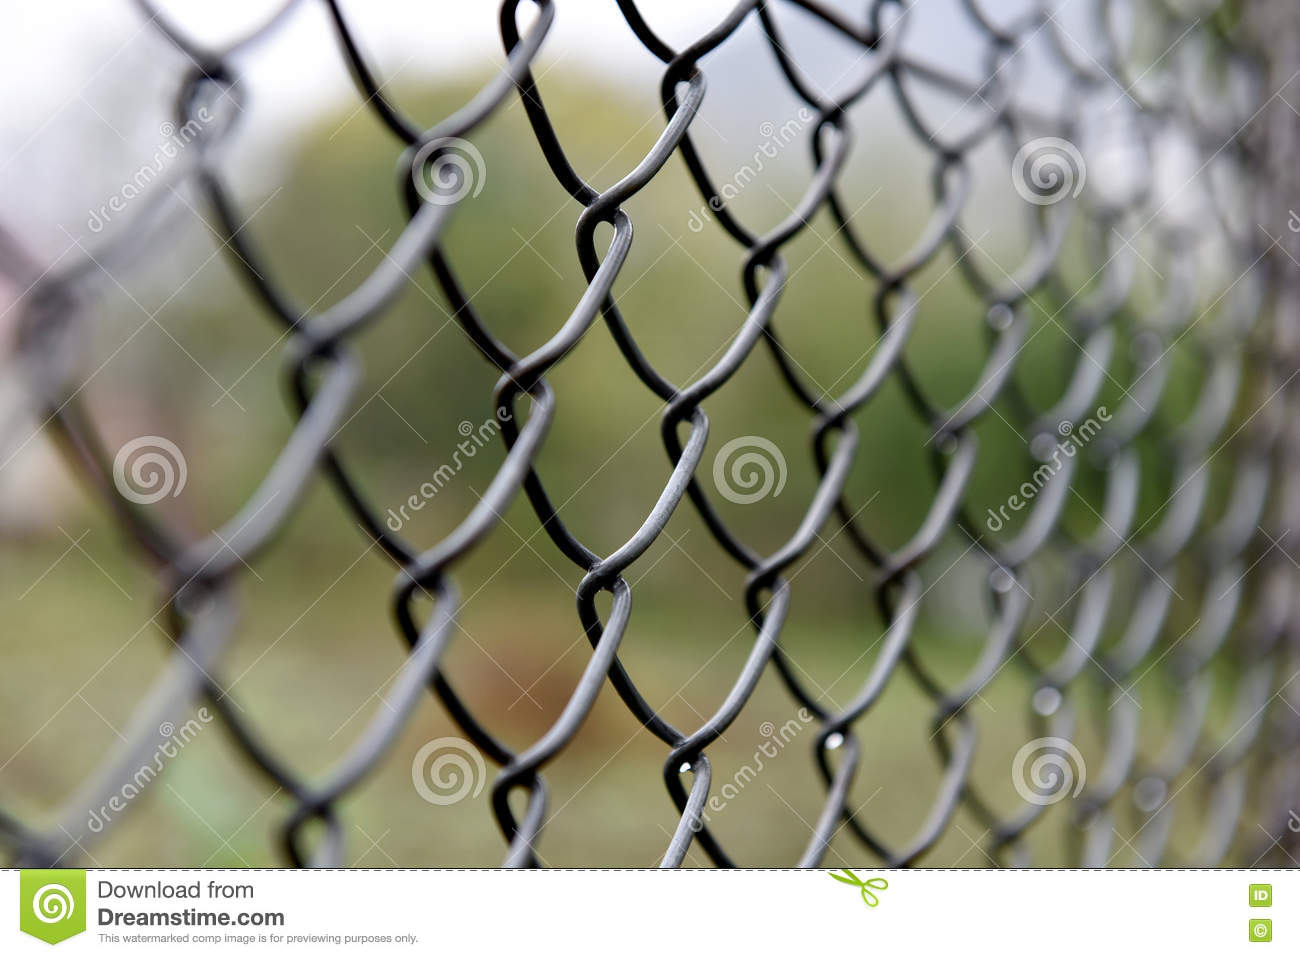 Detail of wire fence stock image. Image of fence, linkage - 78734265